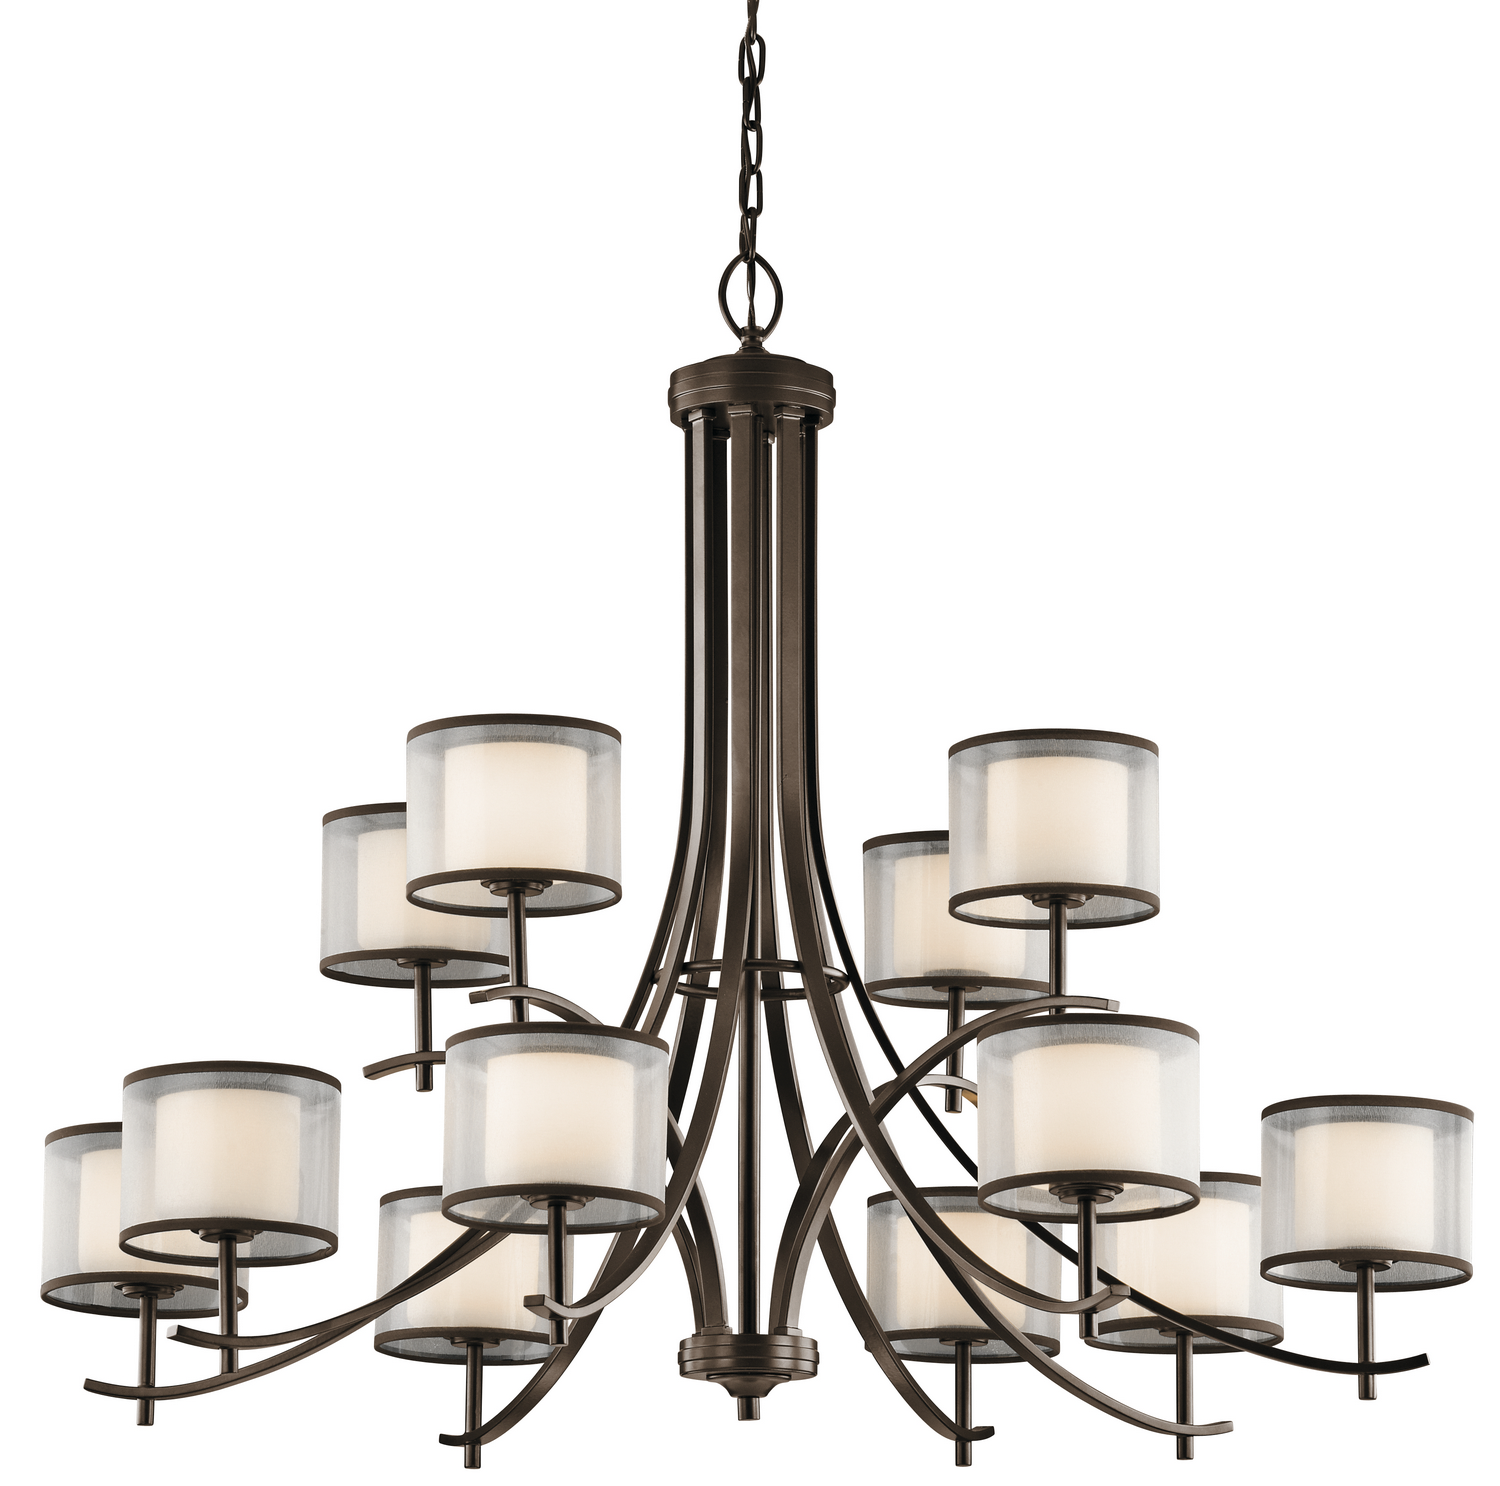 12 Light Chandelier from the Tallie collection by Kichler 43151MIZ